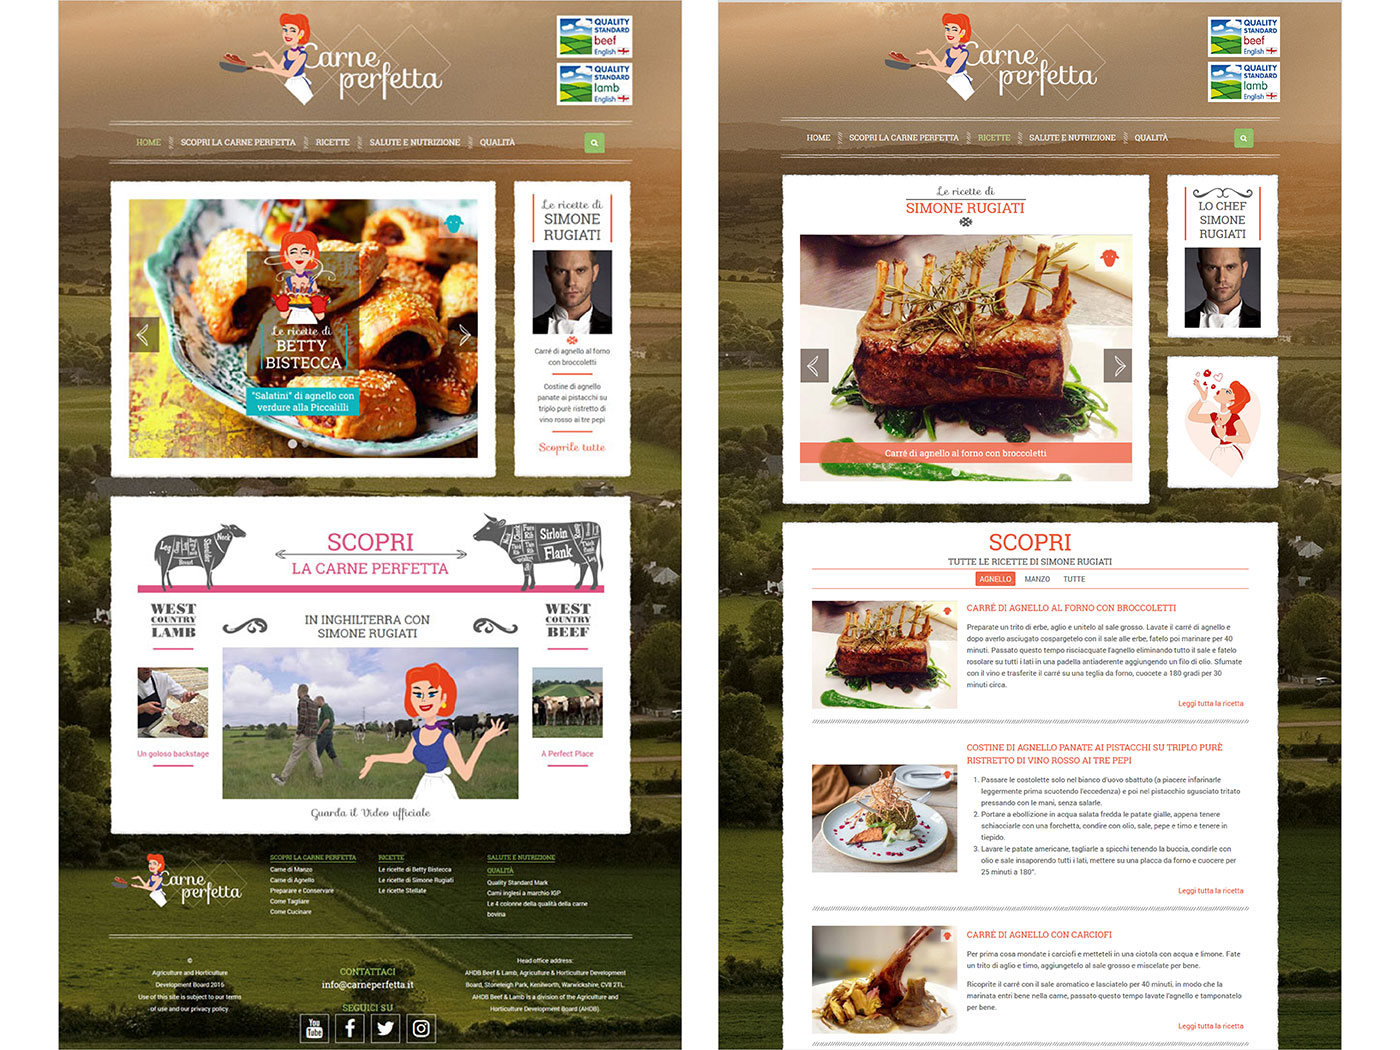 Carne Perfetta website